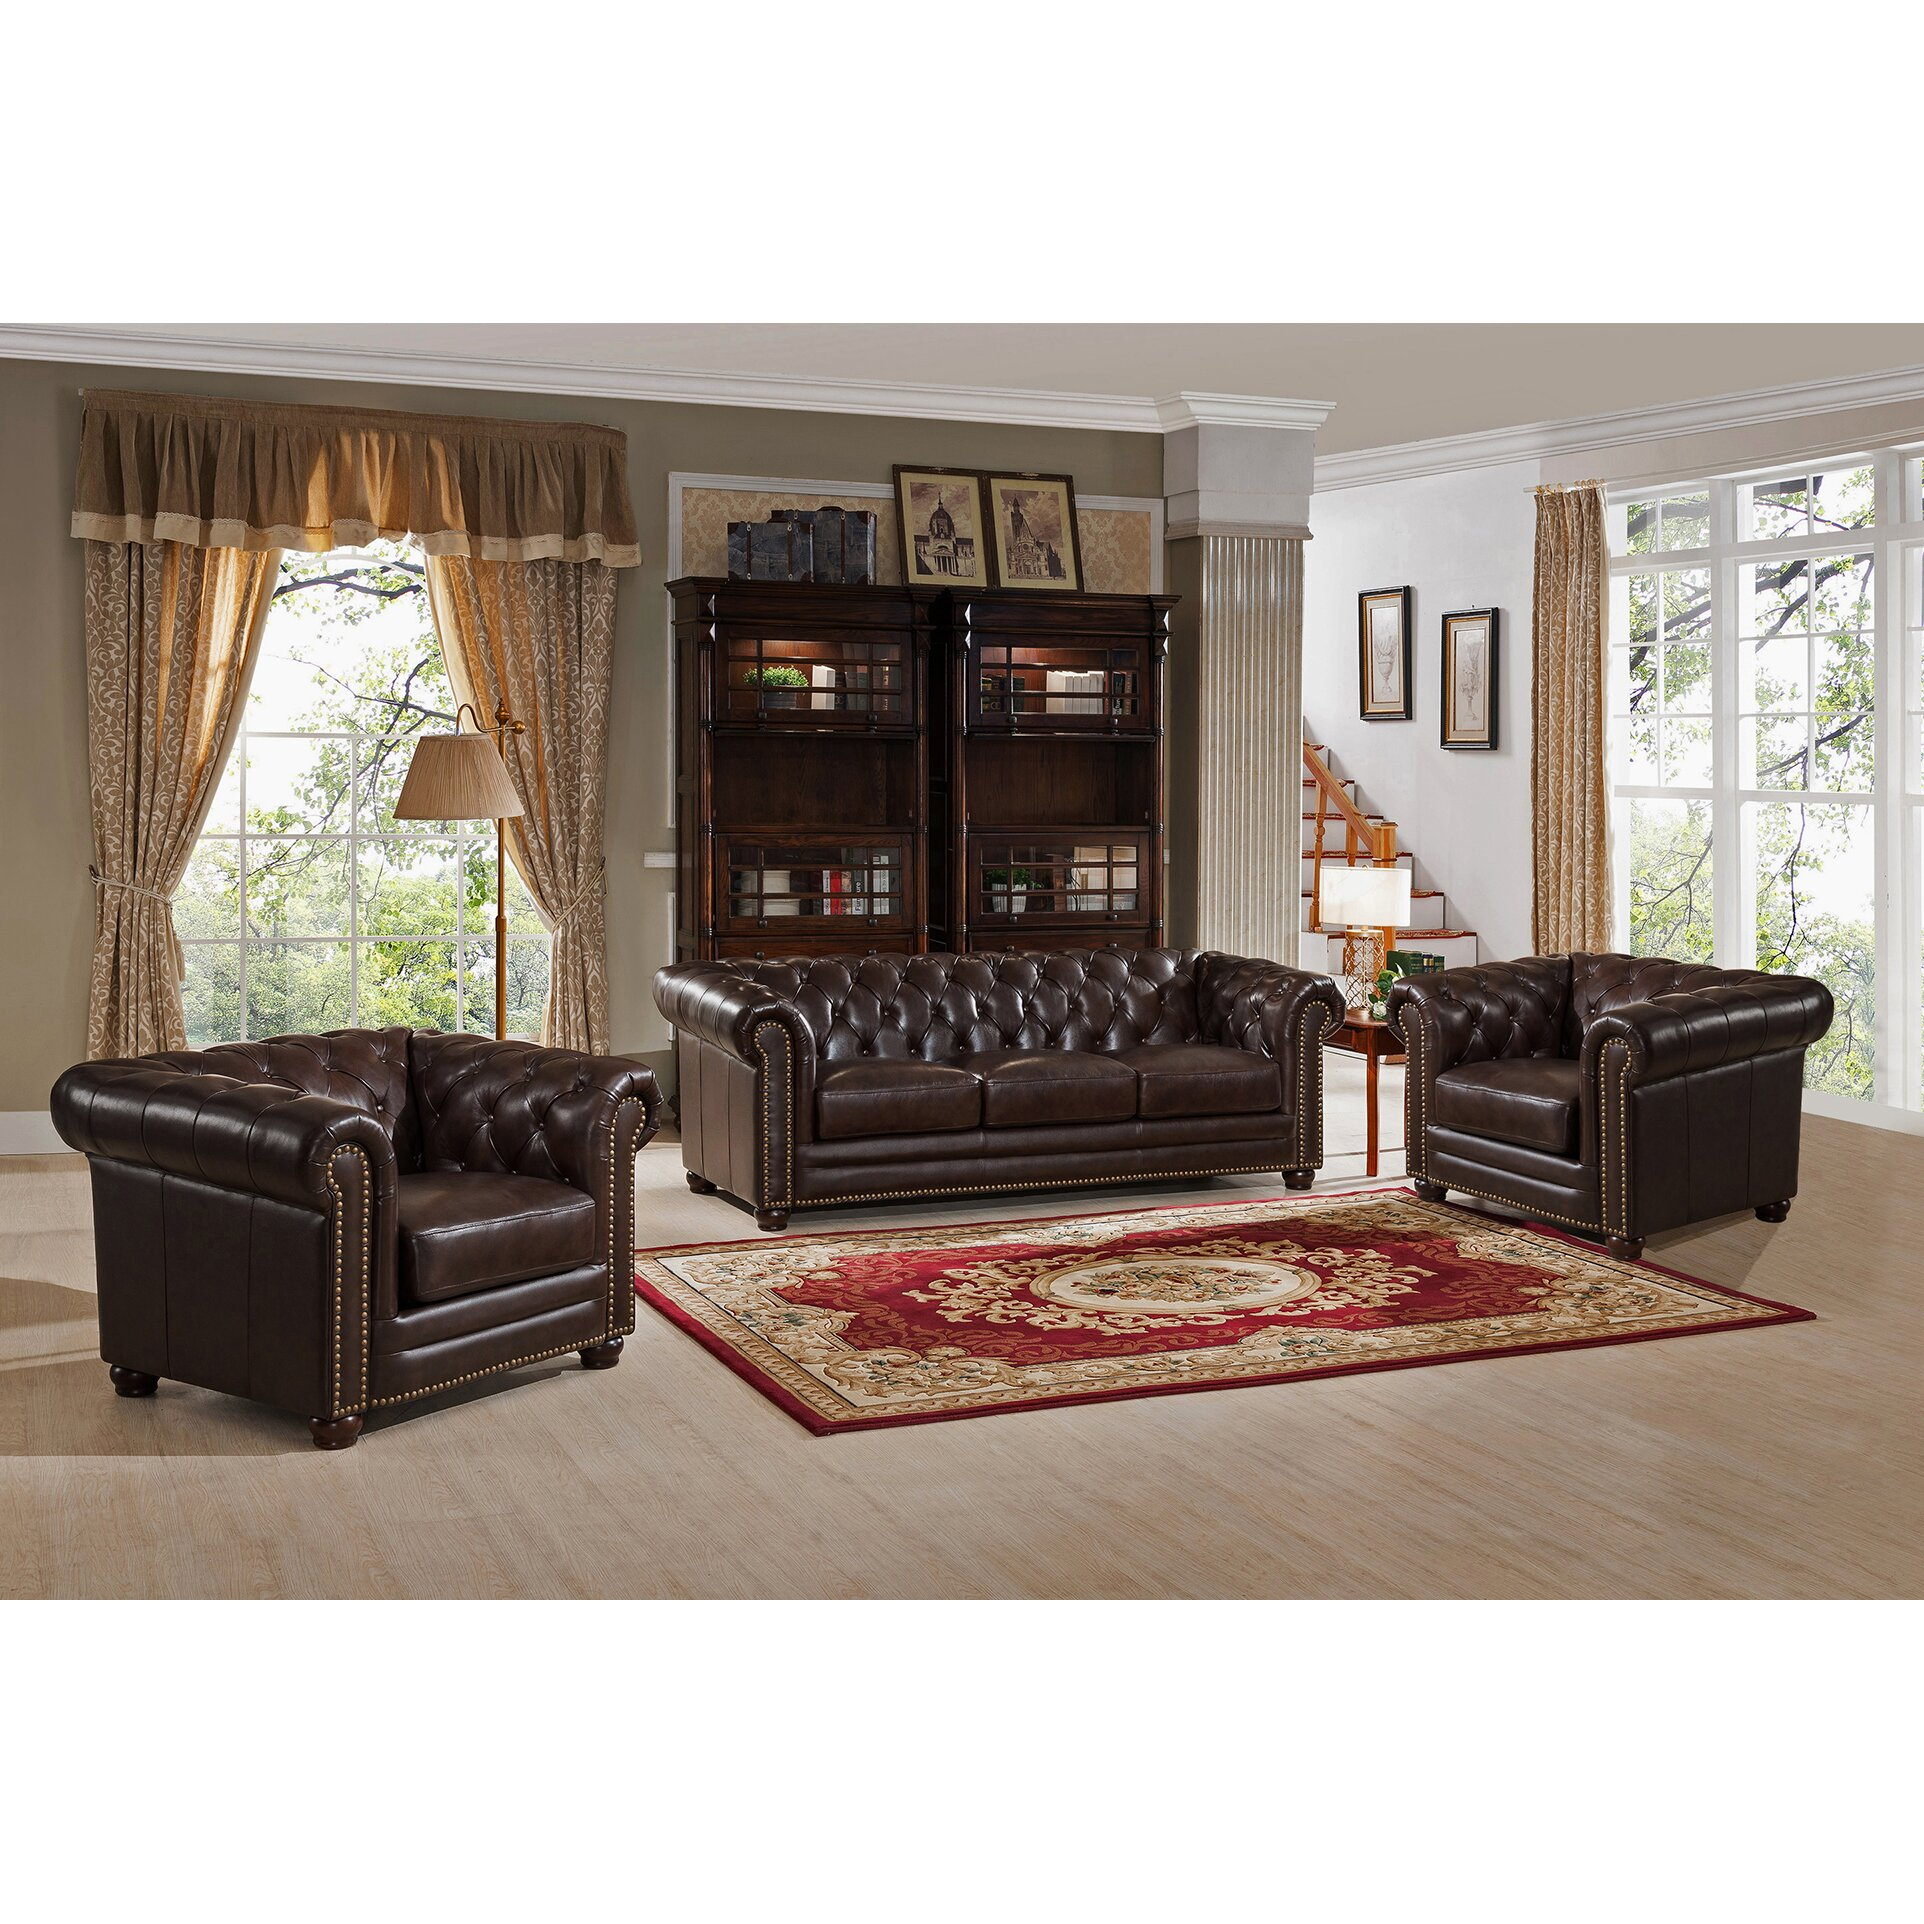 Top Grain Leather Living Room Set Amax Kensington Top Grain Leather Chesterfield Sofa And Two Chair